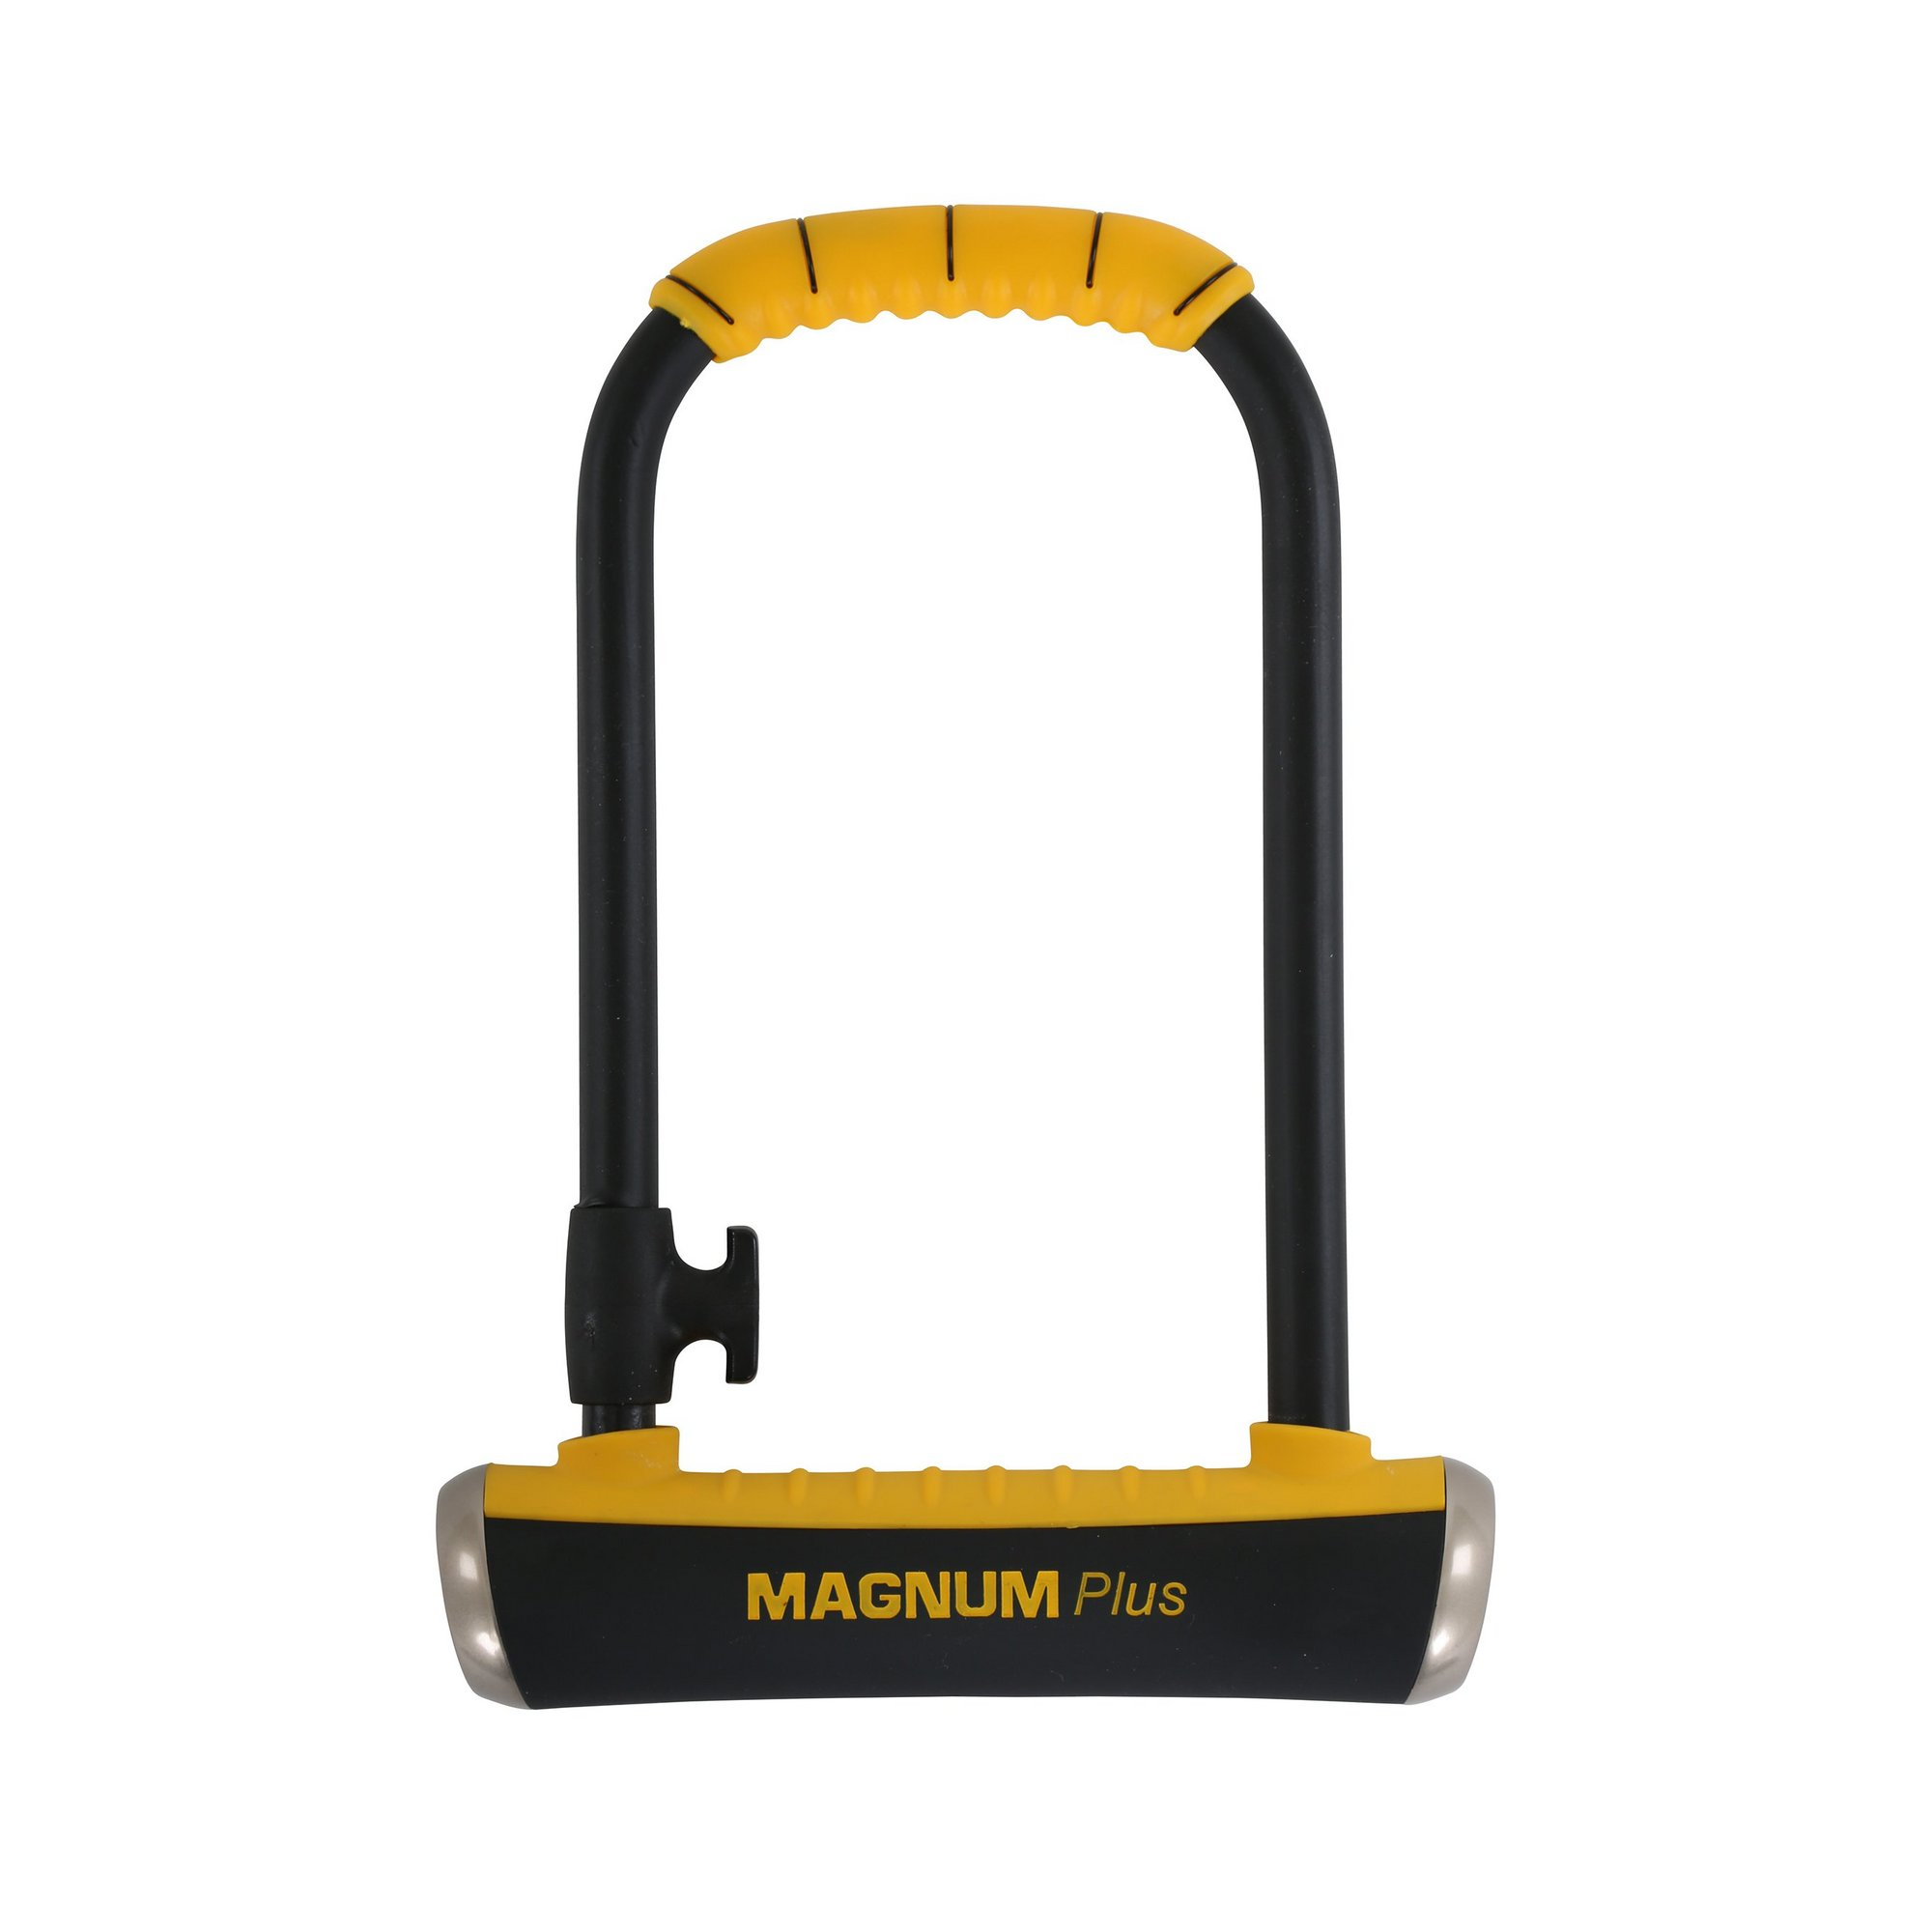 Image of Magnum Plus MagSolid Shackle Key Lock - 115 x 230 x 14mm